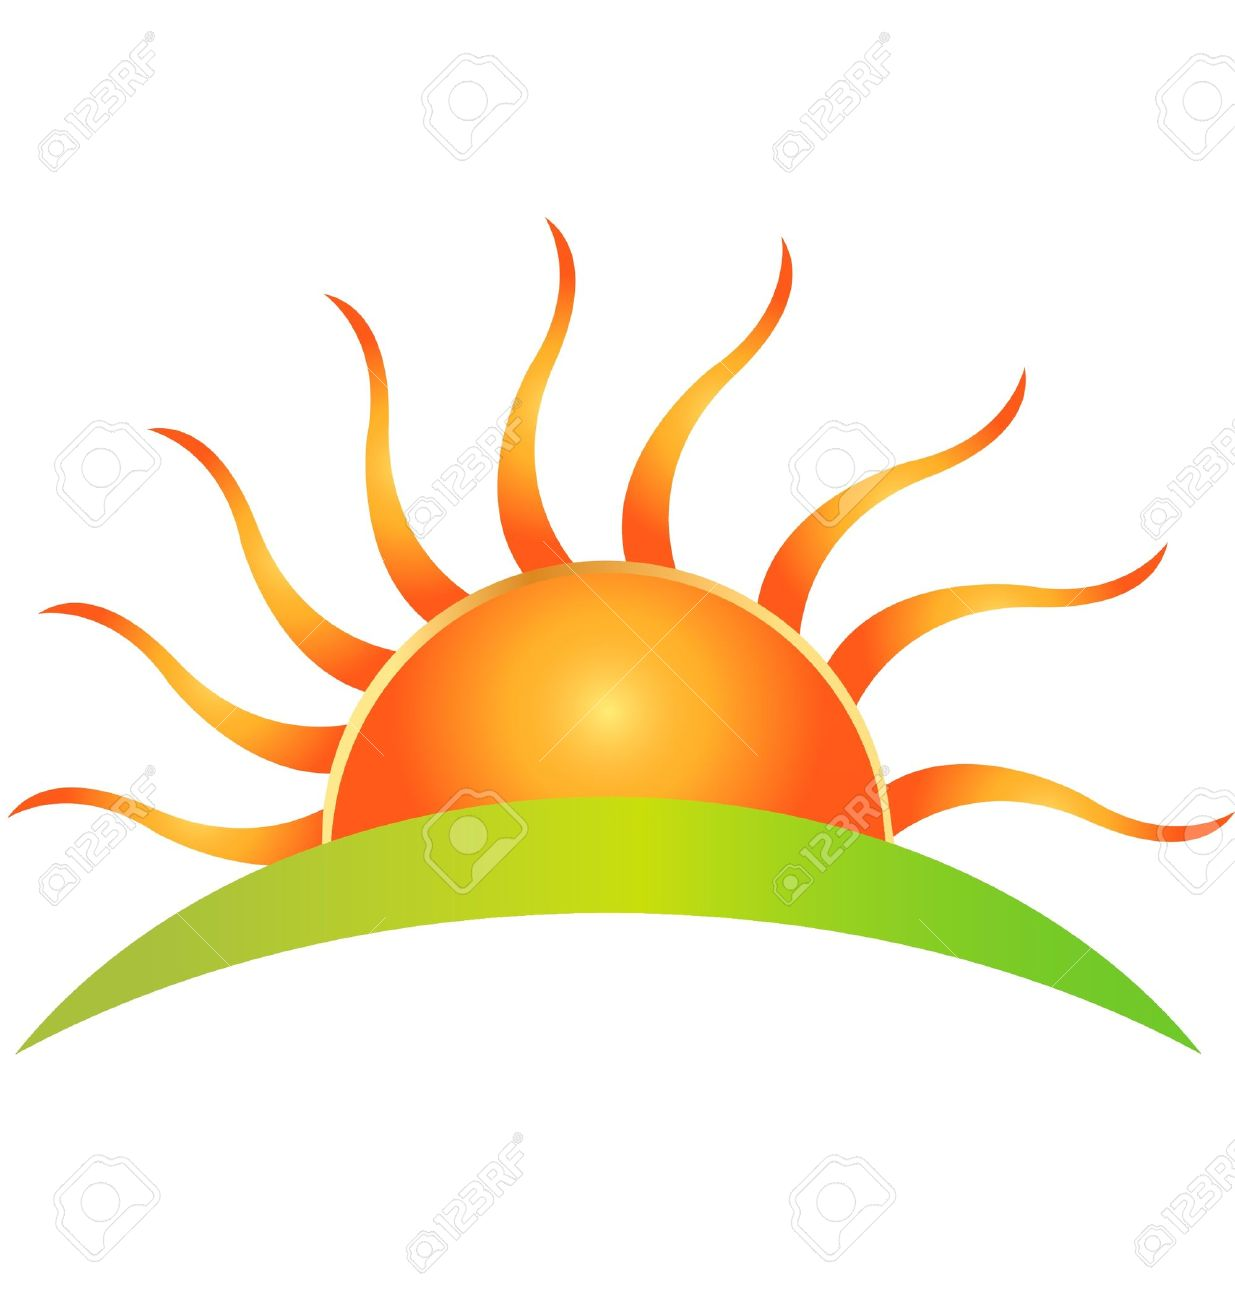 25 665 sun logo cliparts stock vector and royalty free sun logo rh 123rf com sun logos images sun logistics stock